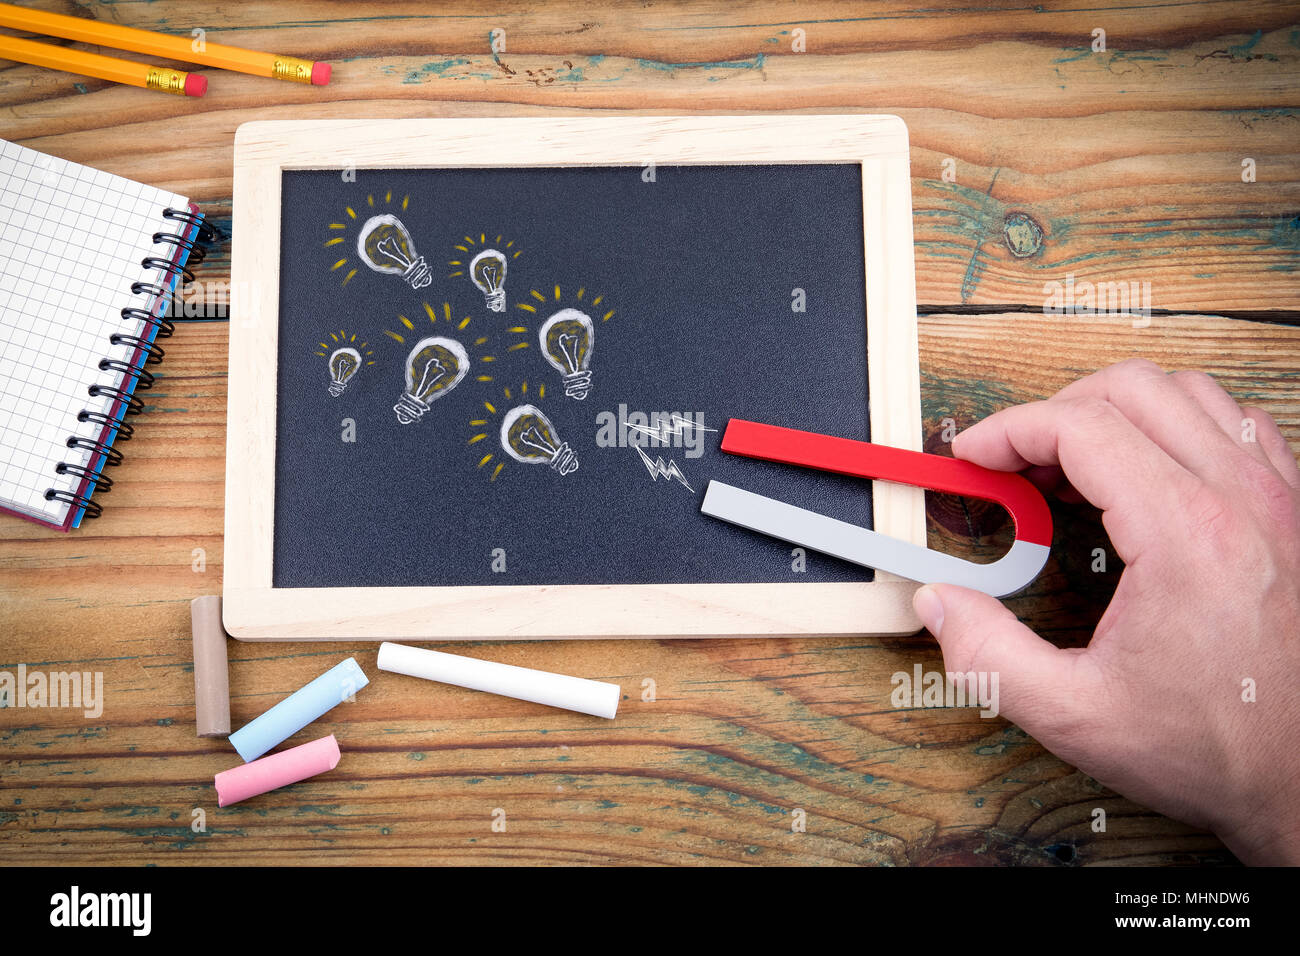 View of magnet attracting light bulb traffic of ideas, innovations, startups. Blackboard and chalk on wooden table - Stock Image